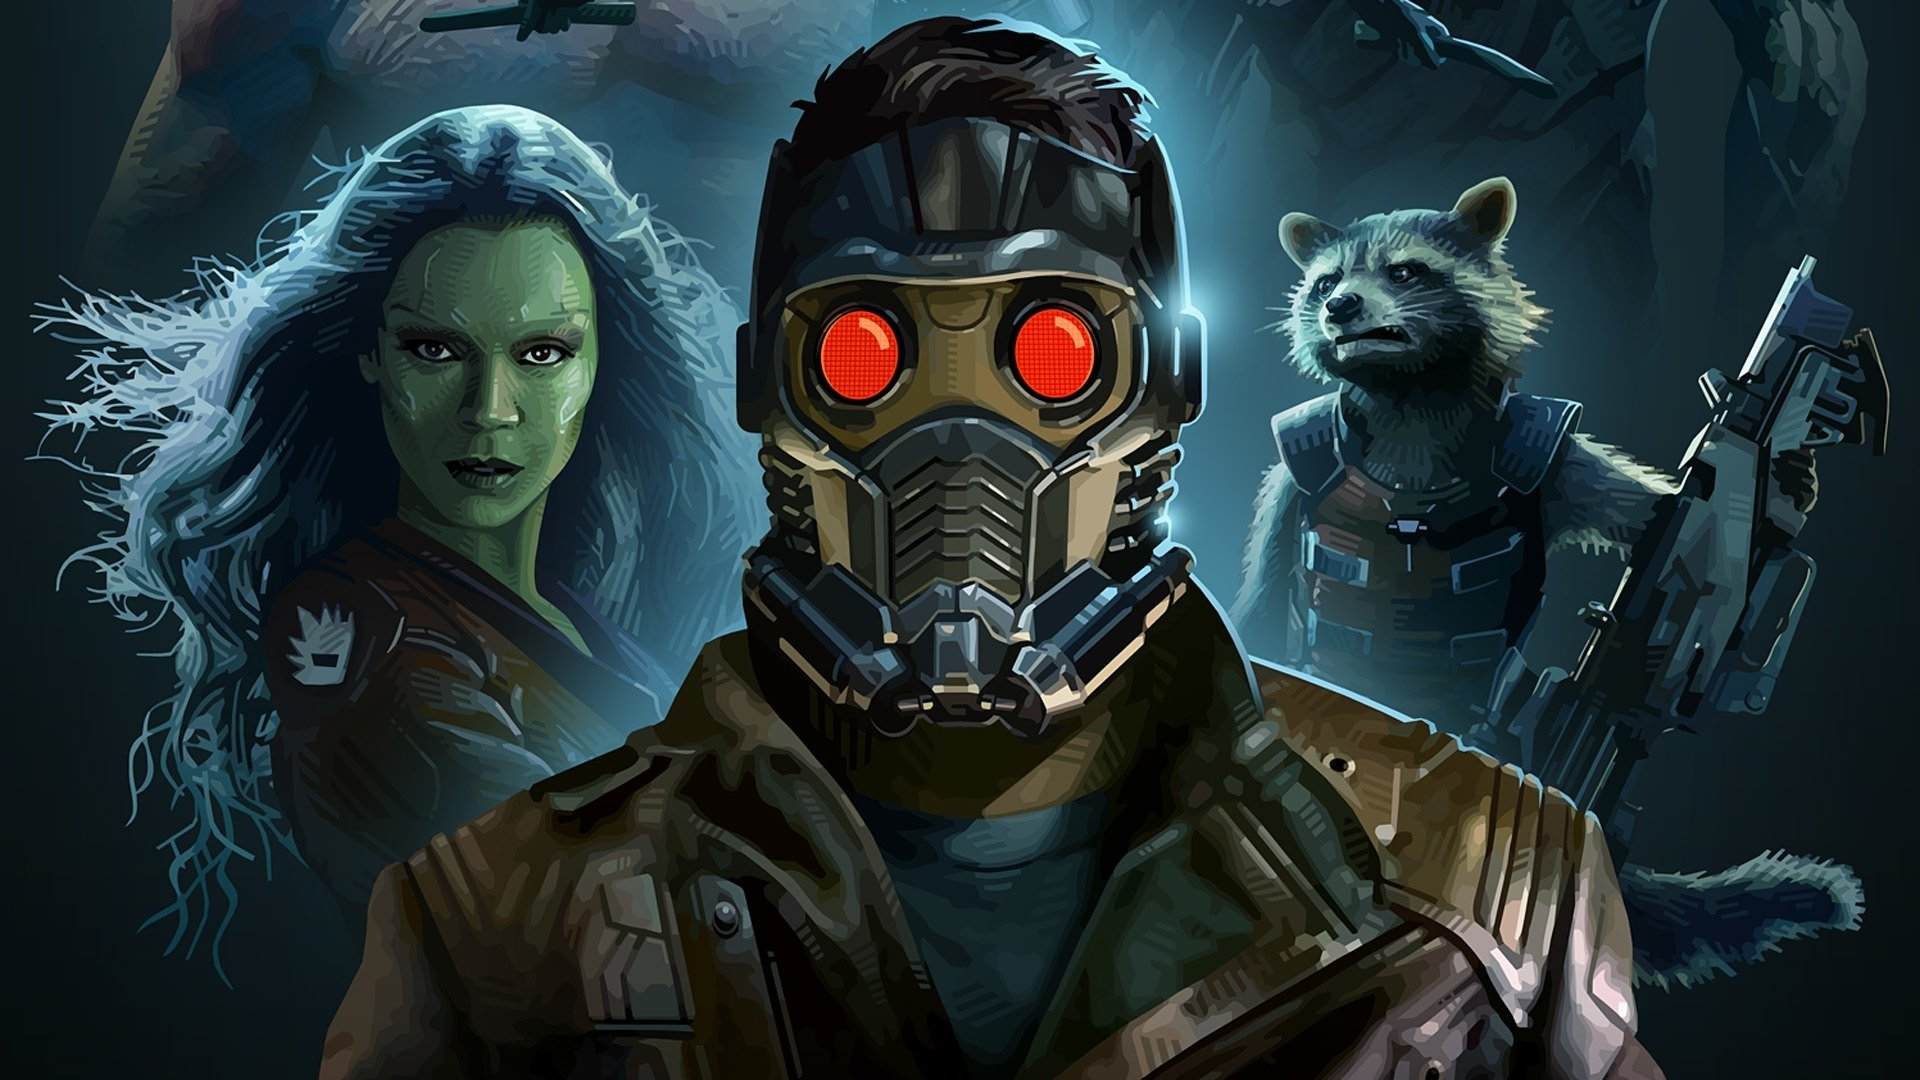 Wallpapers Id - - Star Lord Gamora And Rocket , HD Wallpaper & Backgrounds